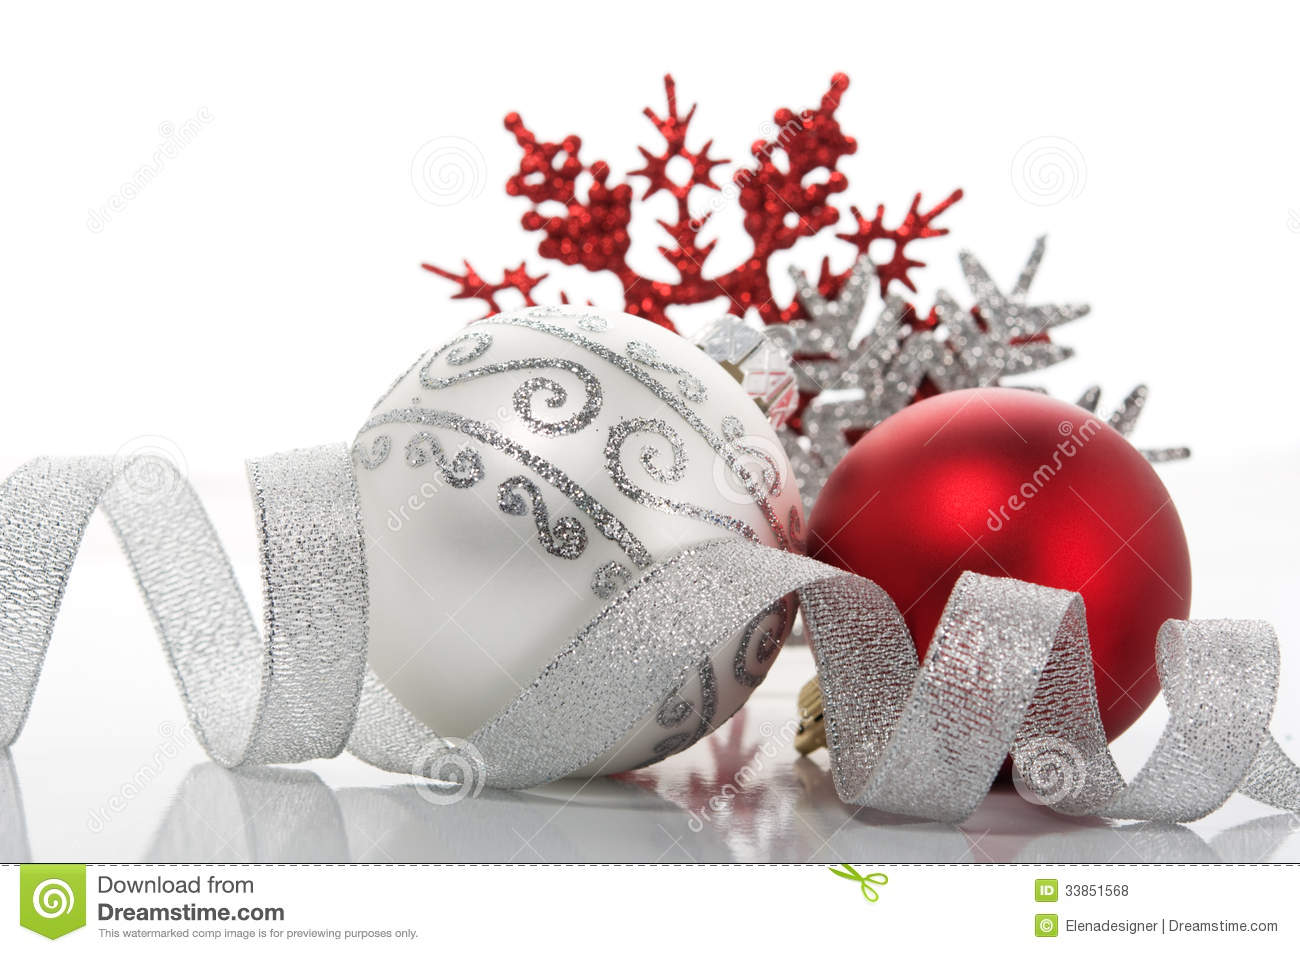 Red and silver christmas decorating ideas ideas christmas decorating - Red silver and white christmas decorations ...